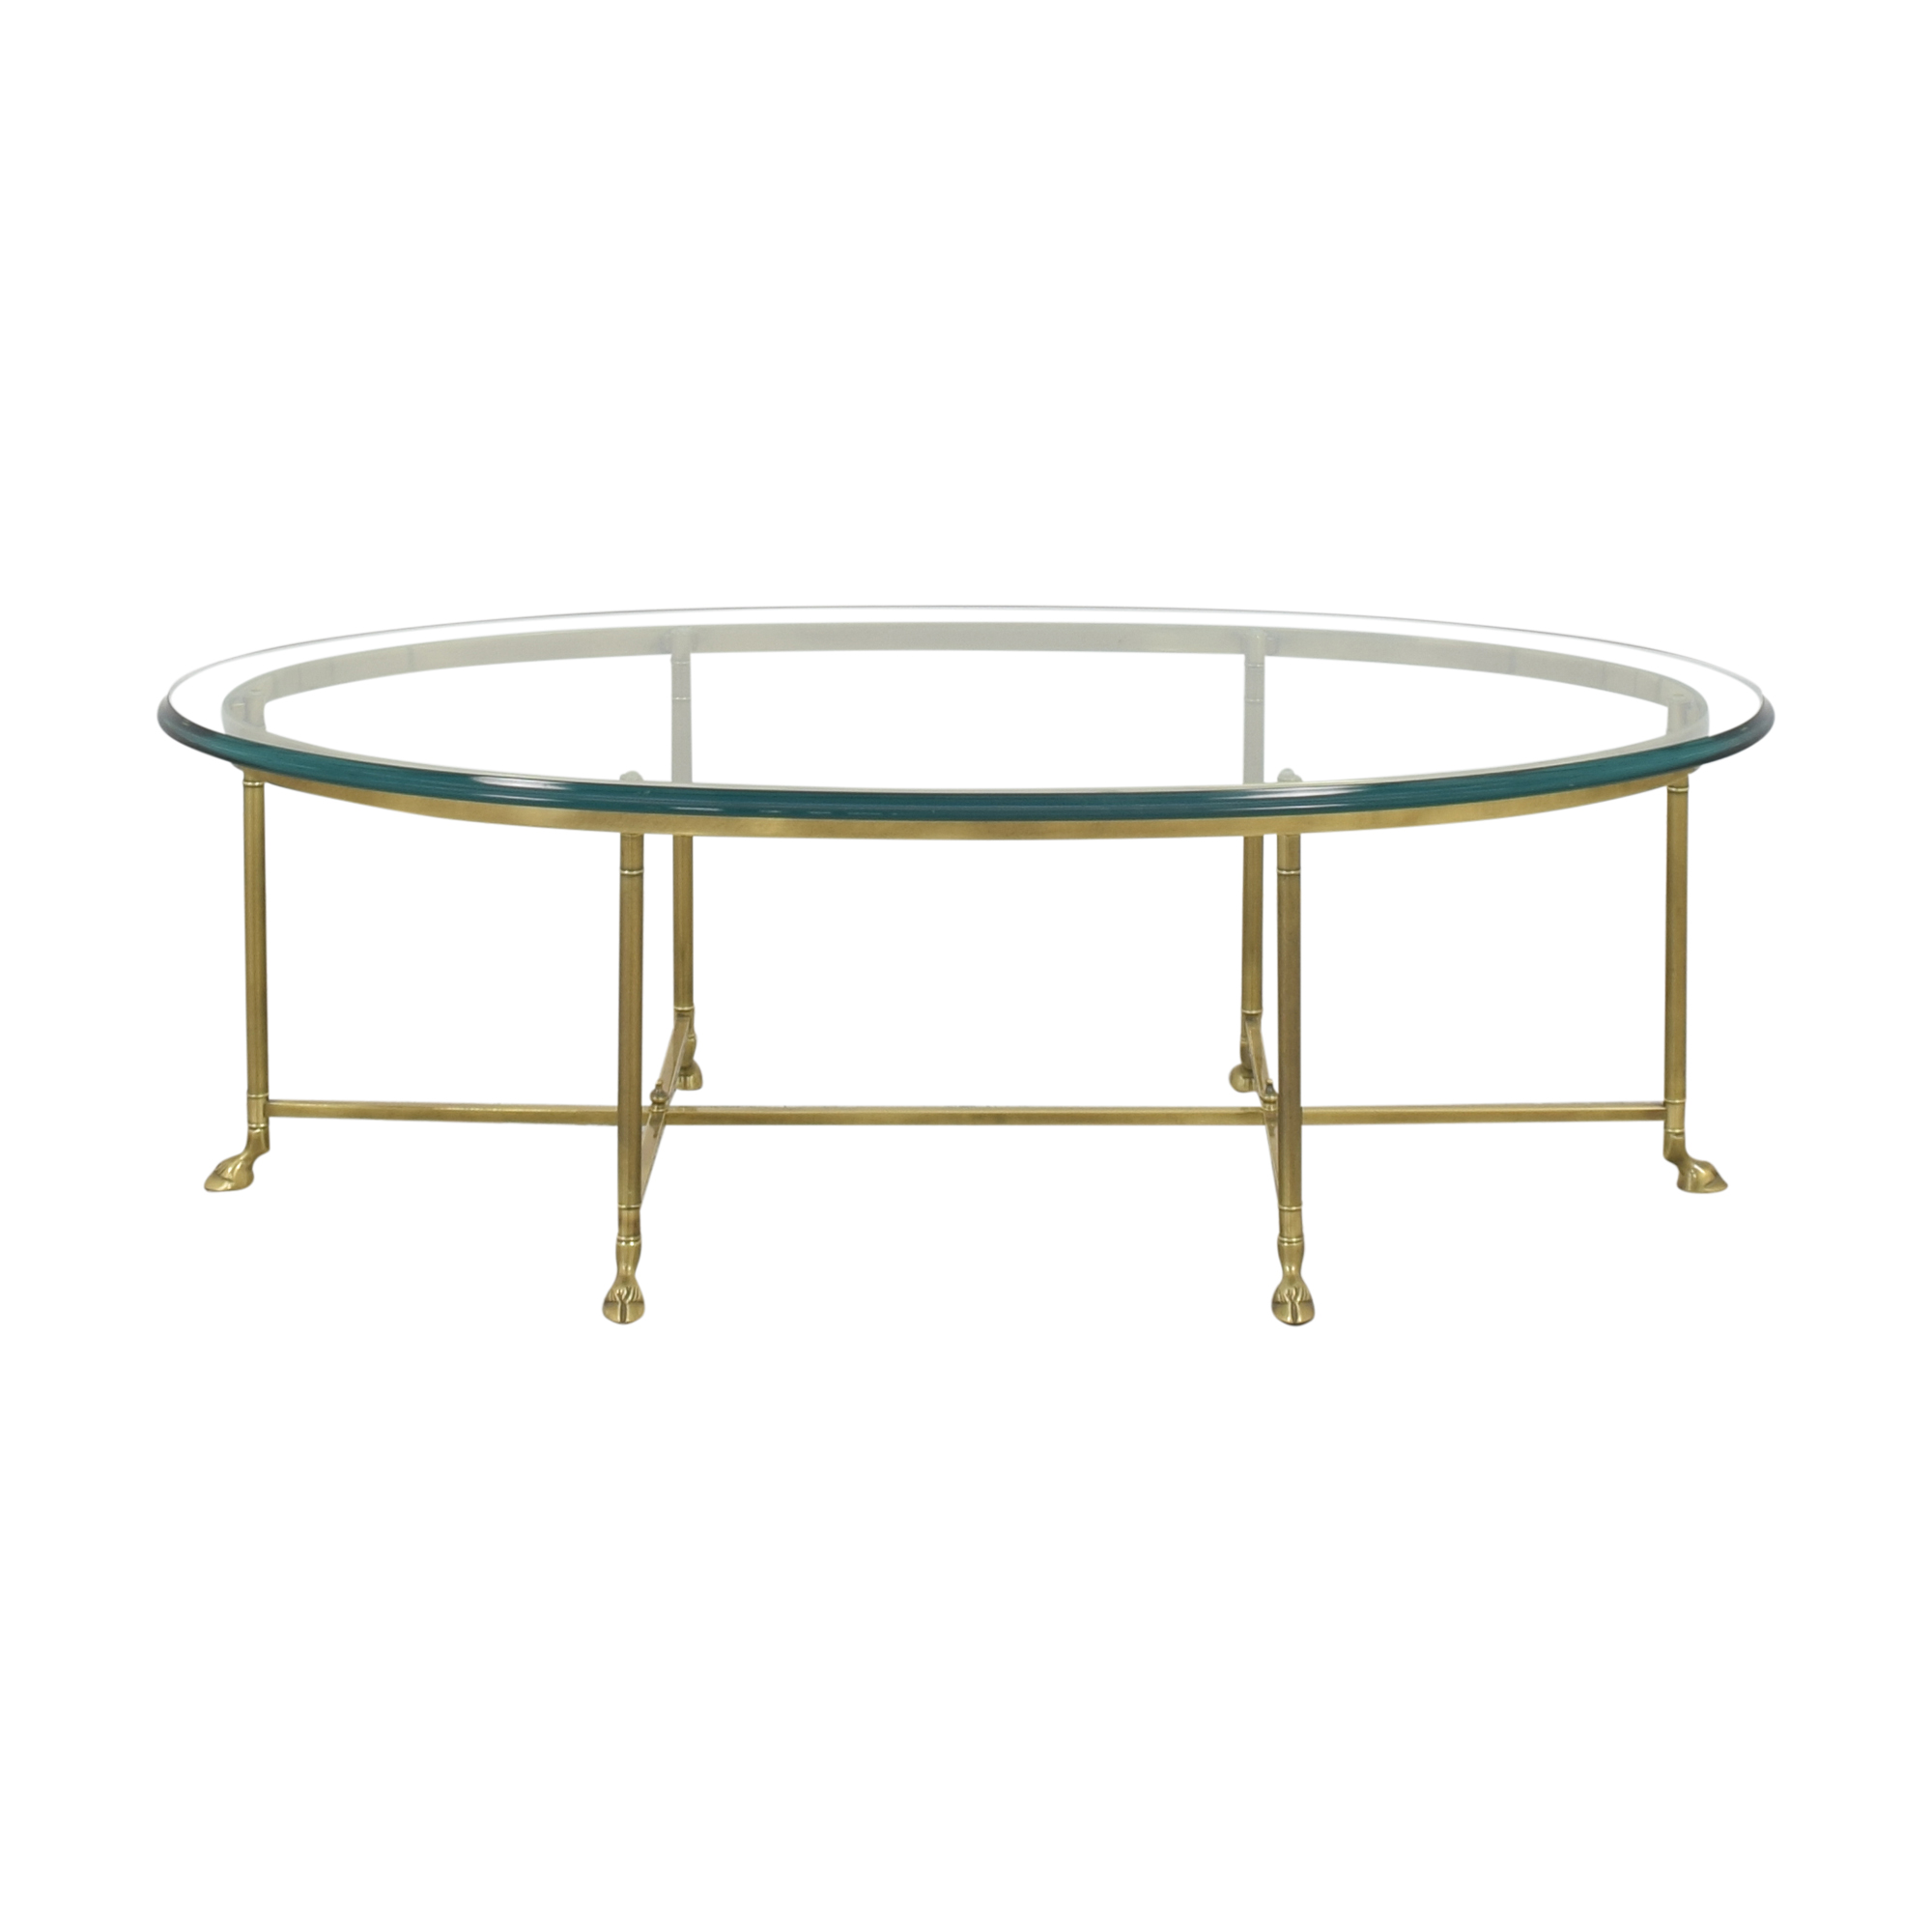 Stickley Furniture Stickley Furniture Oval Cocktail Table ct